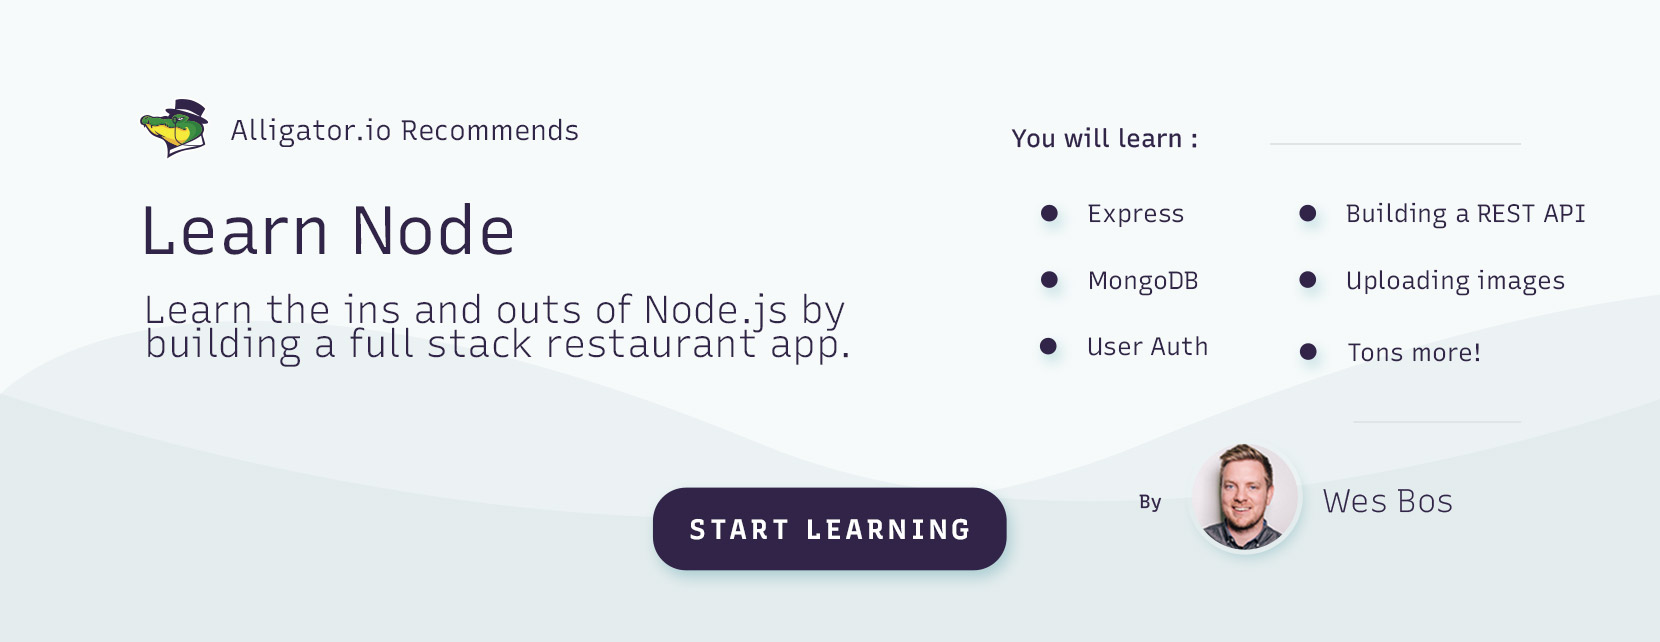 Recommended Node.js video course